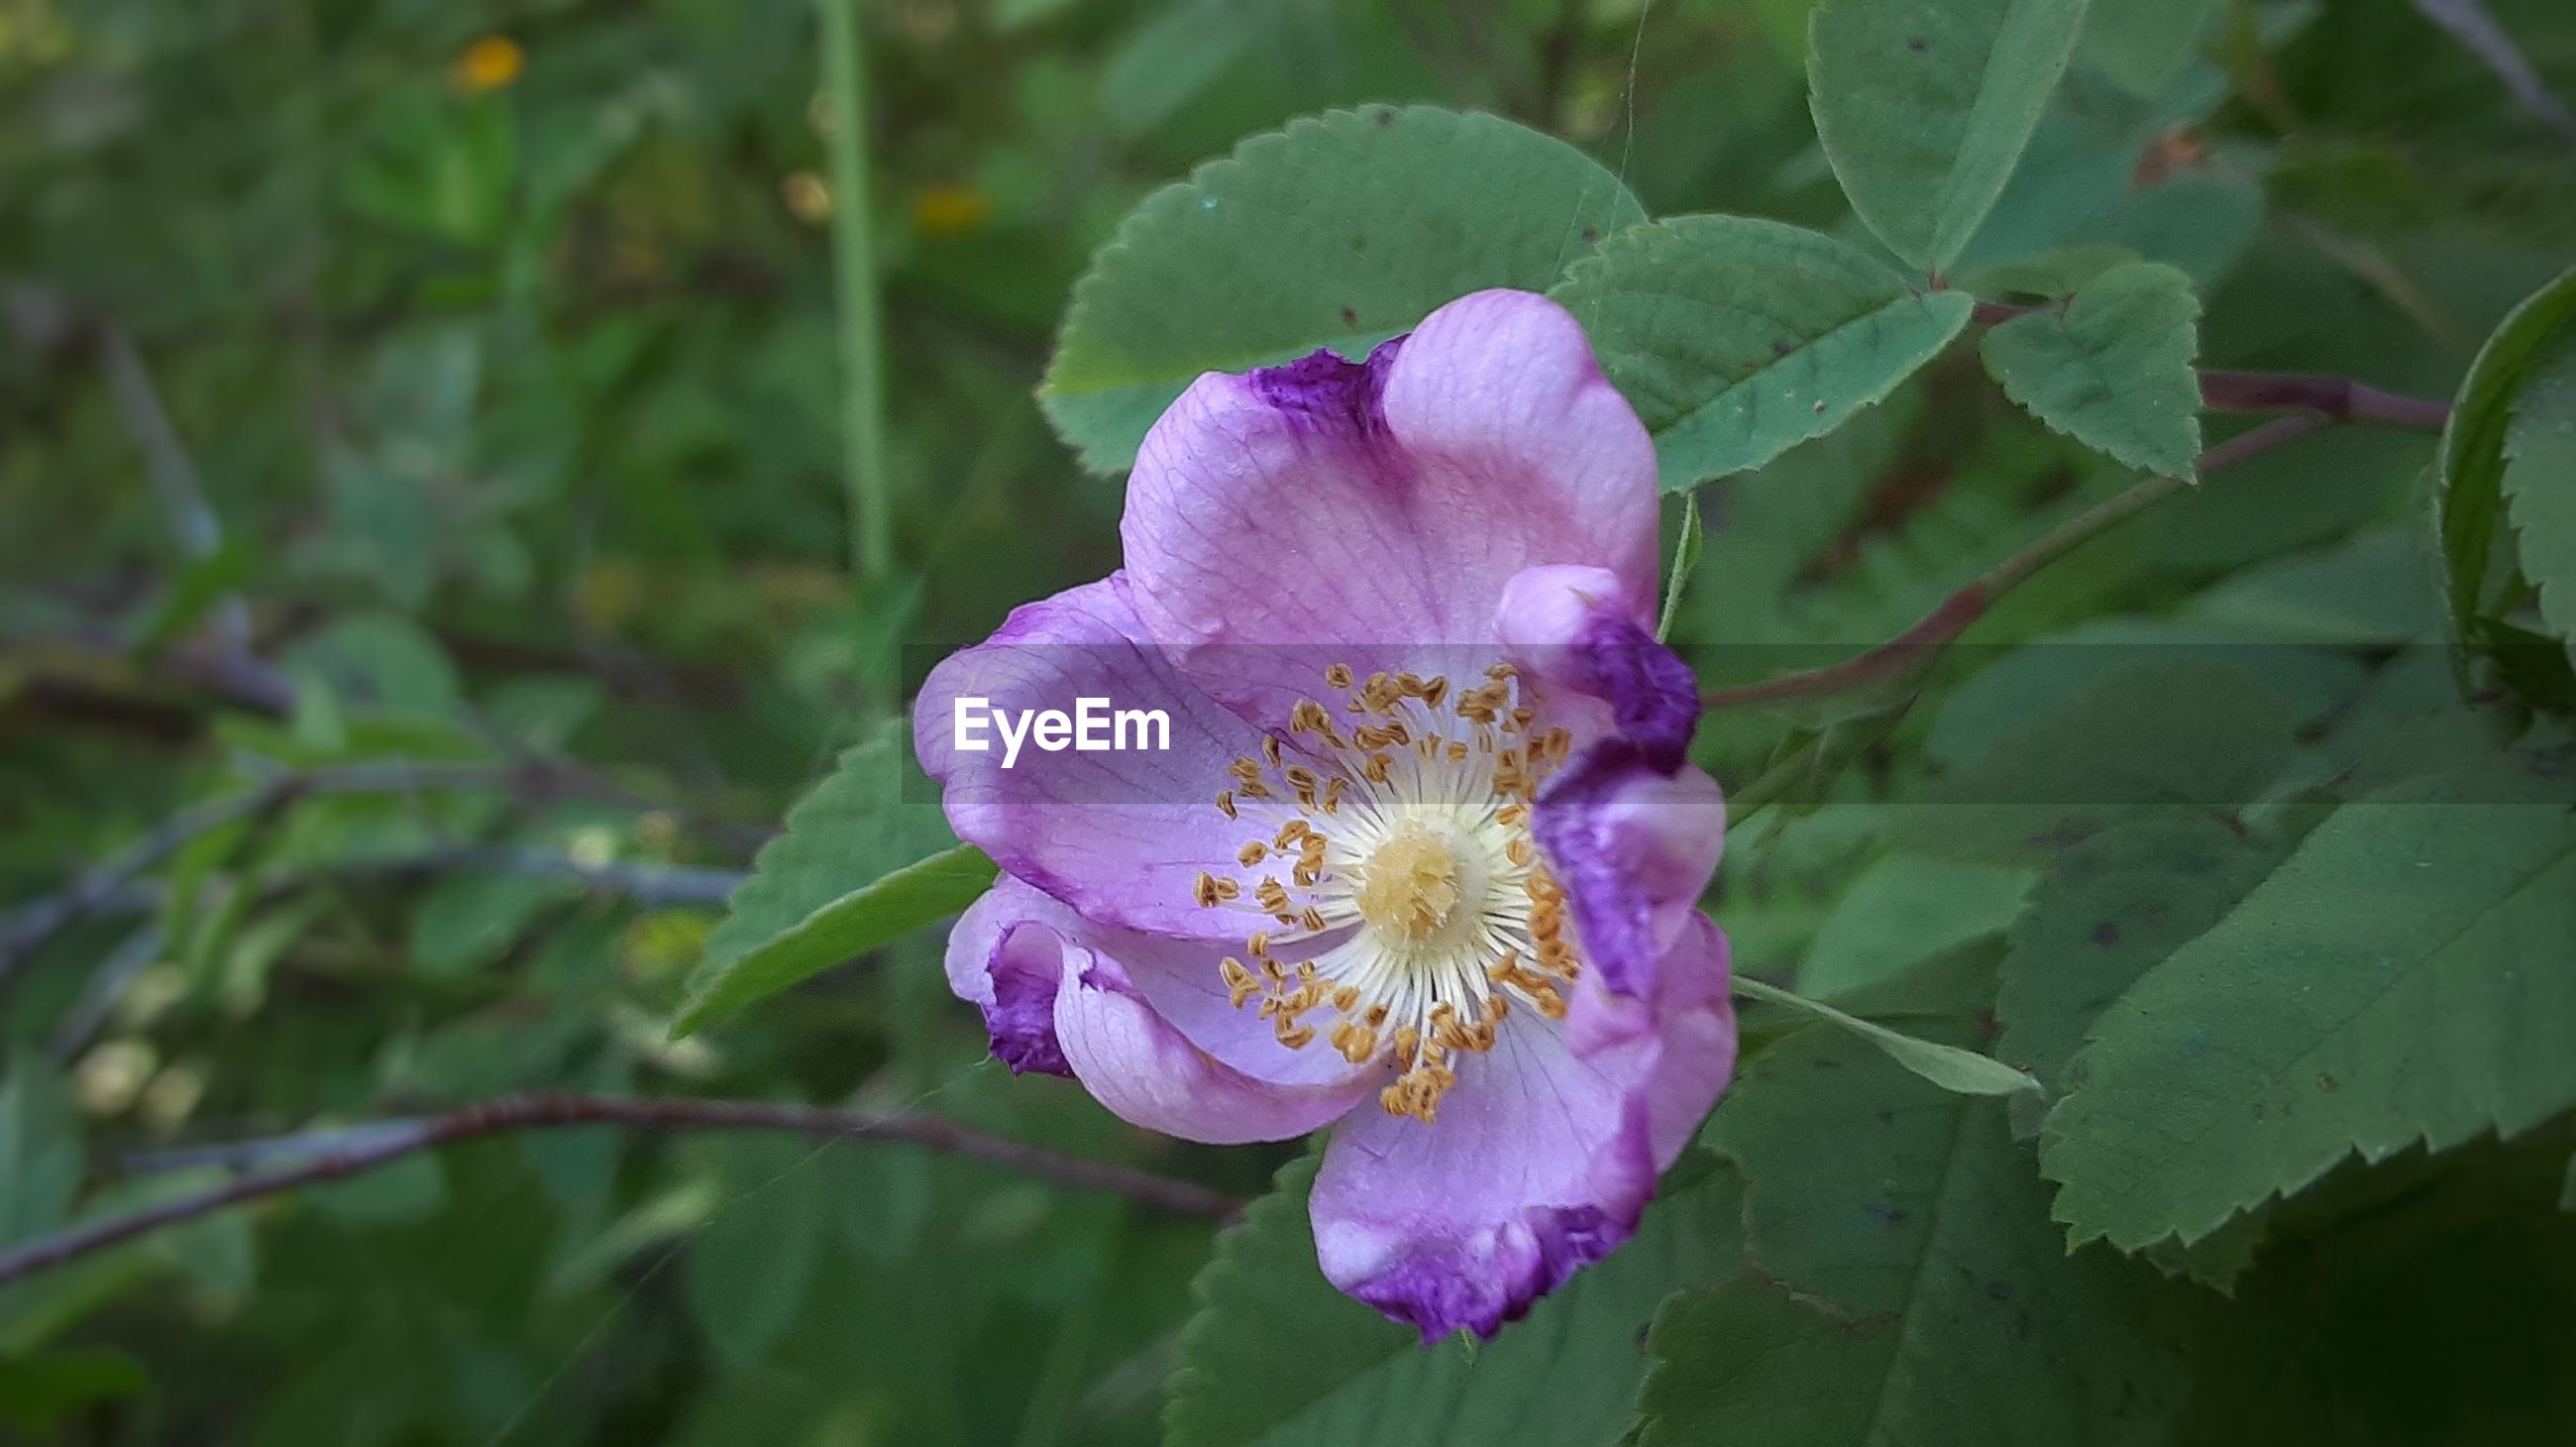 CLOSE-UP OF PURPLE ROSE FLOWER